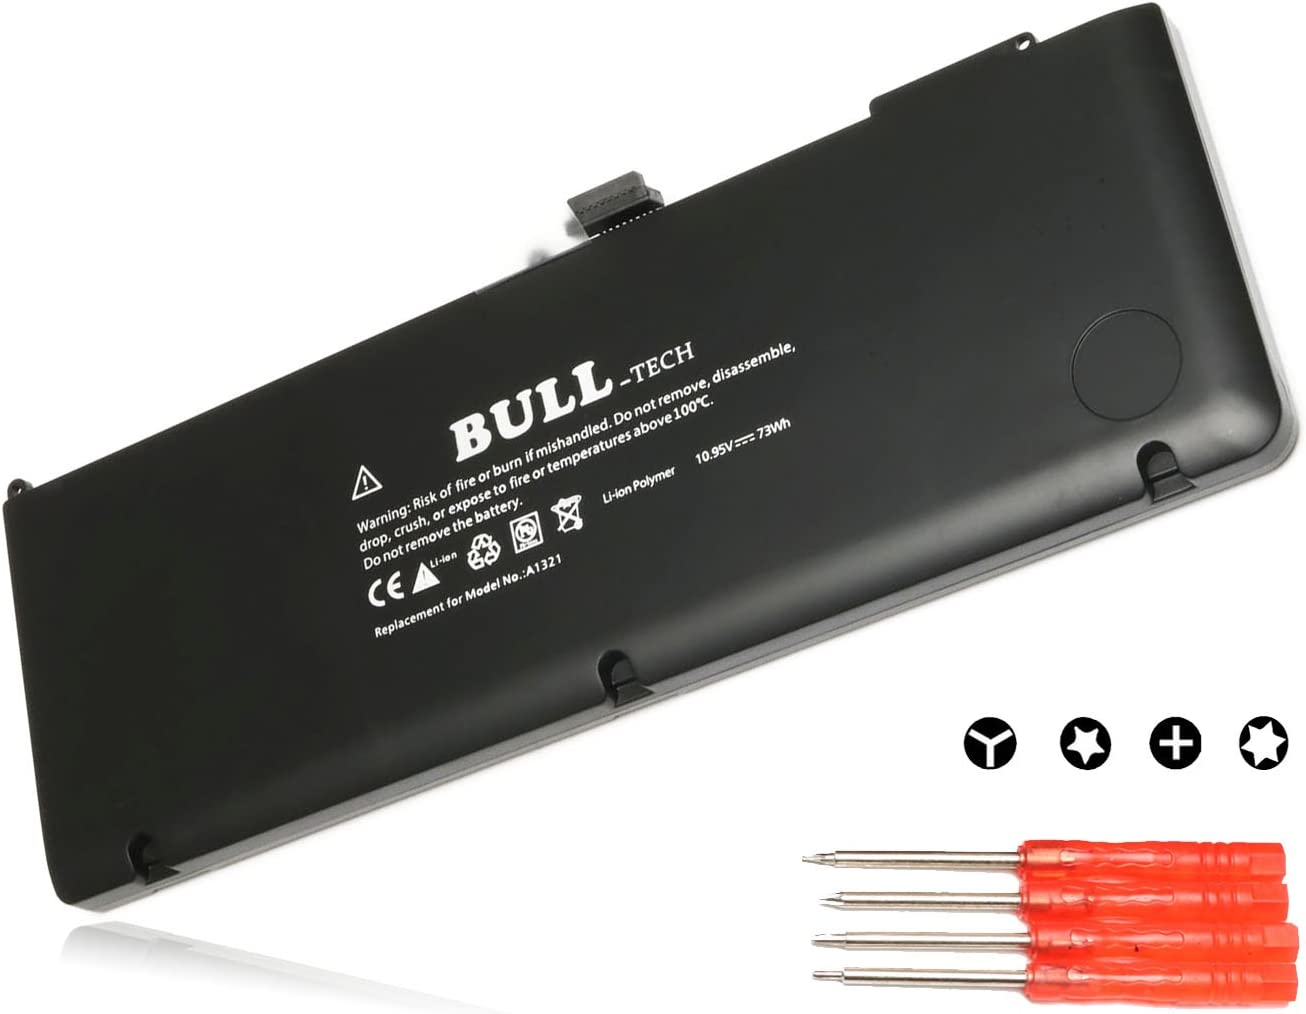 Bull Replacement New Laptop Battery for Apple A1321 A1286 (Only for Mid 2009 2010 Version), fits MB985 MB986J/A MC118 Unibody MacBook Pro 15'' [Li-Polymer 10.95V / 73Wh] with Four Free Screwdrivers